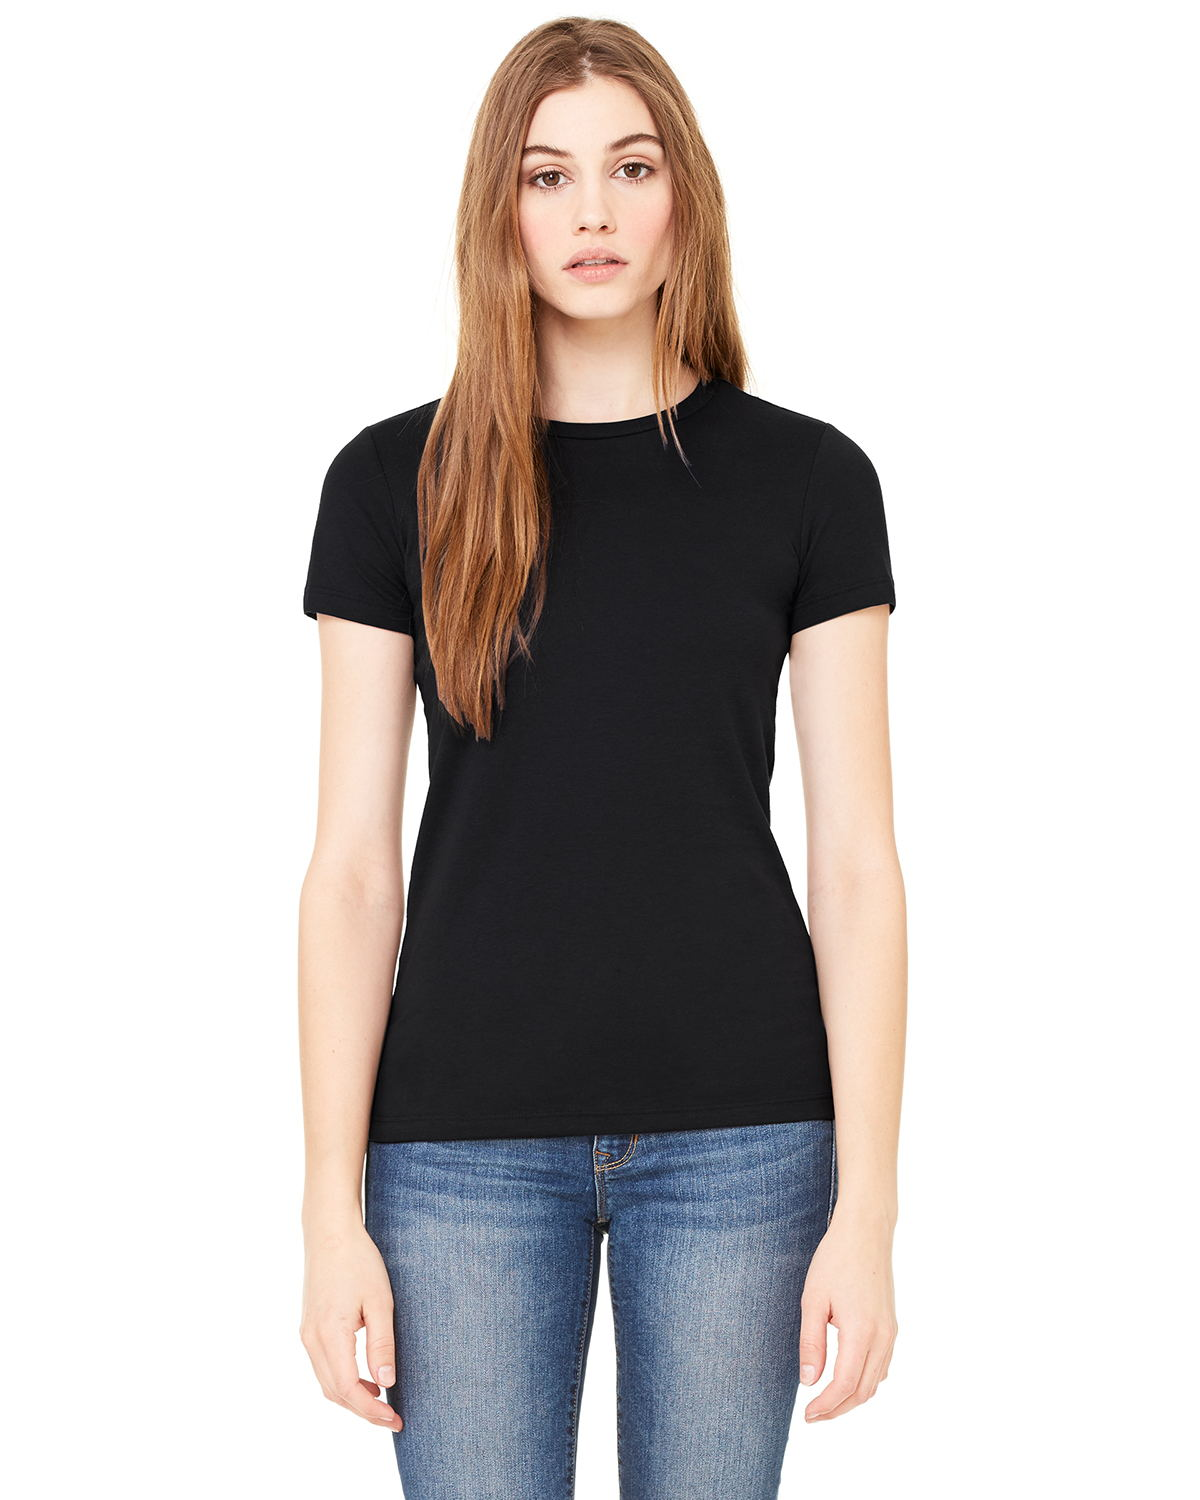 Canvas 6650 - Ladies' Poly/Cotton Short-Sleeve Tee